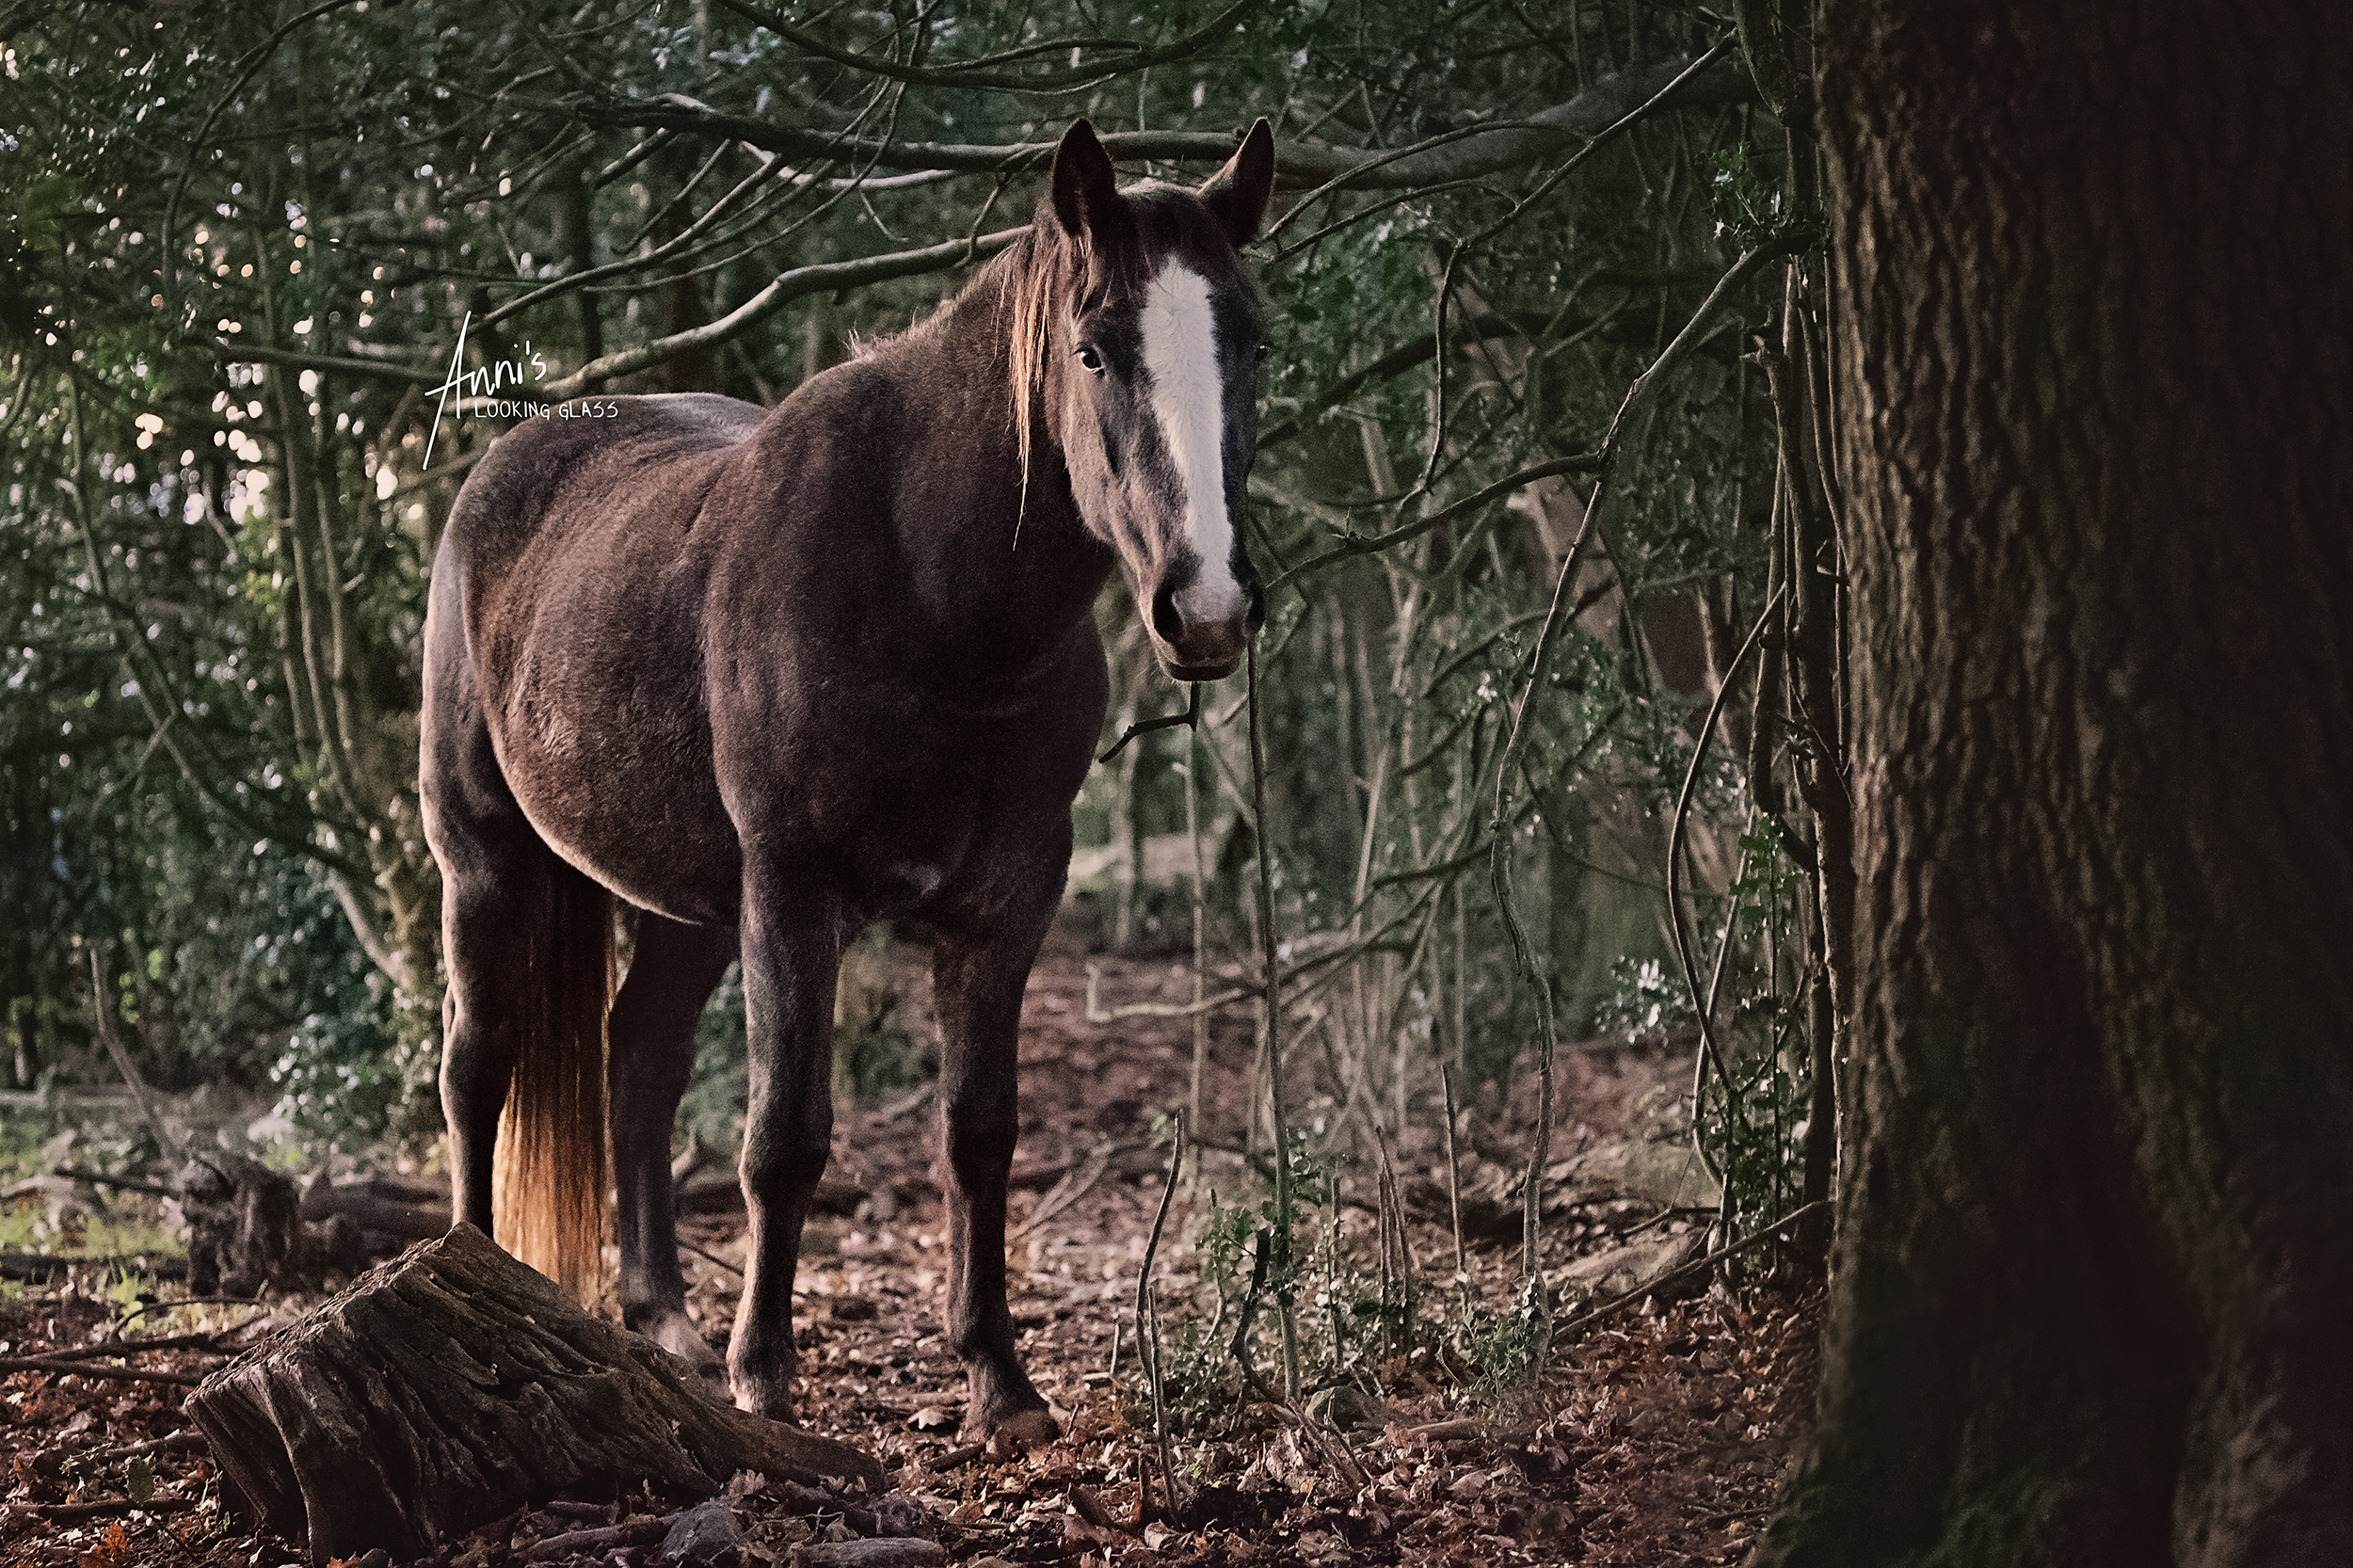 A brown horse with a big white blaze standing in the woods